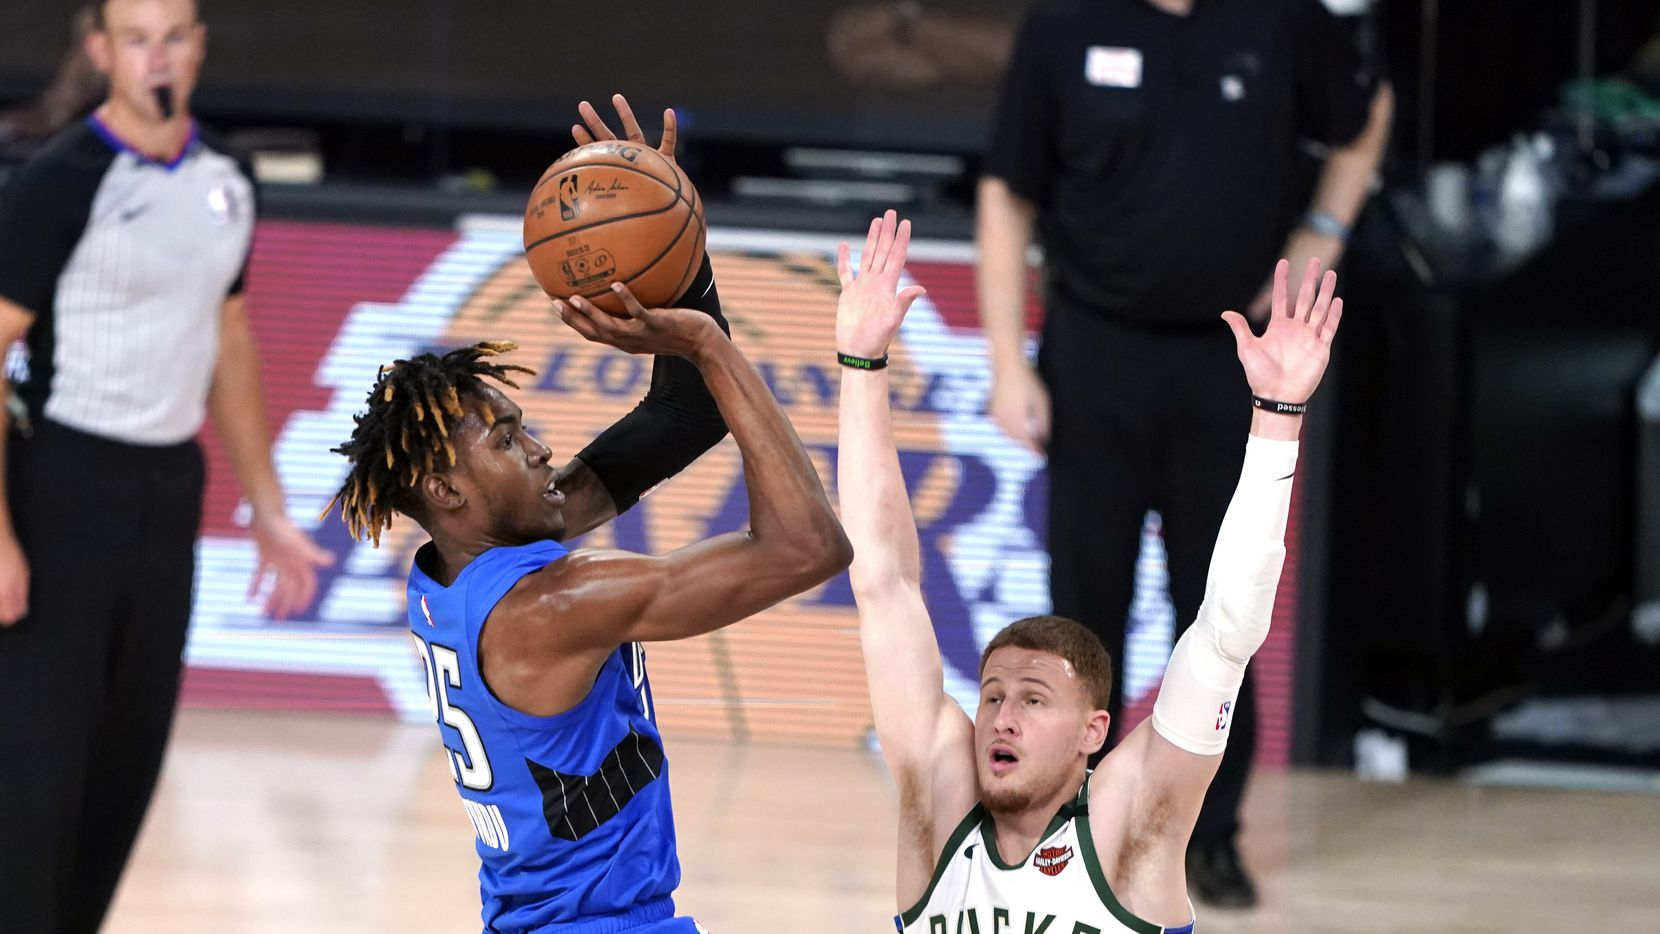 Orlando Magic's Wes Iwundu (25) shoots as Milwaukee Bucks' Donte DiVincenzo (0) defends during the second half of an NBA basketball first round playoff game Saturday, Aug. 29, 2020, in Lake Buena Vista, Fla. (AP Photo/Ashley Landis)